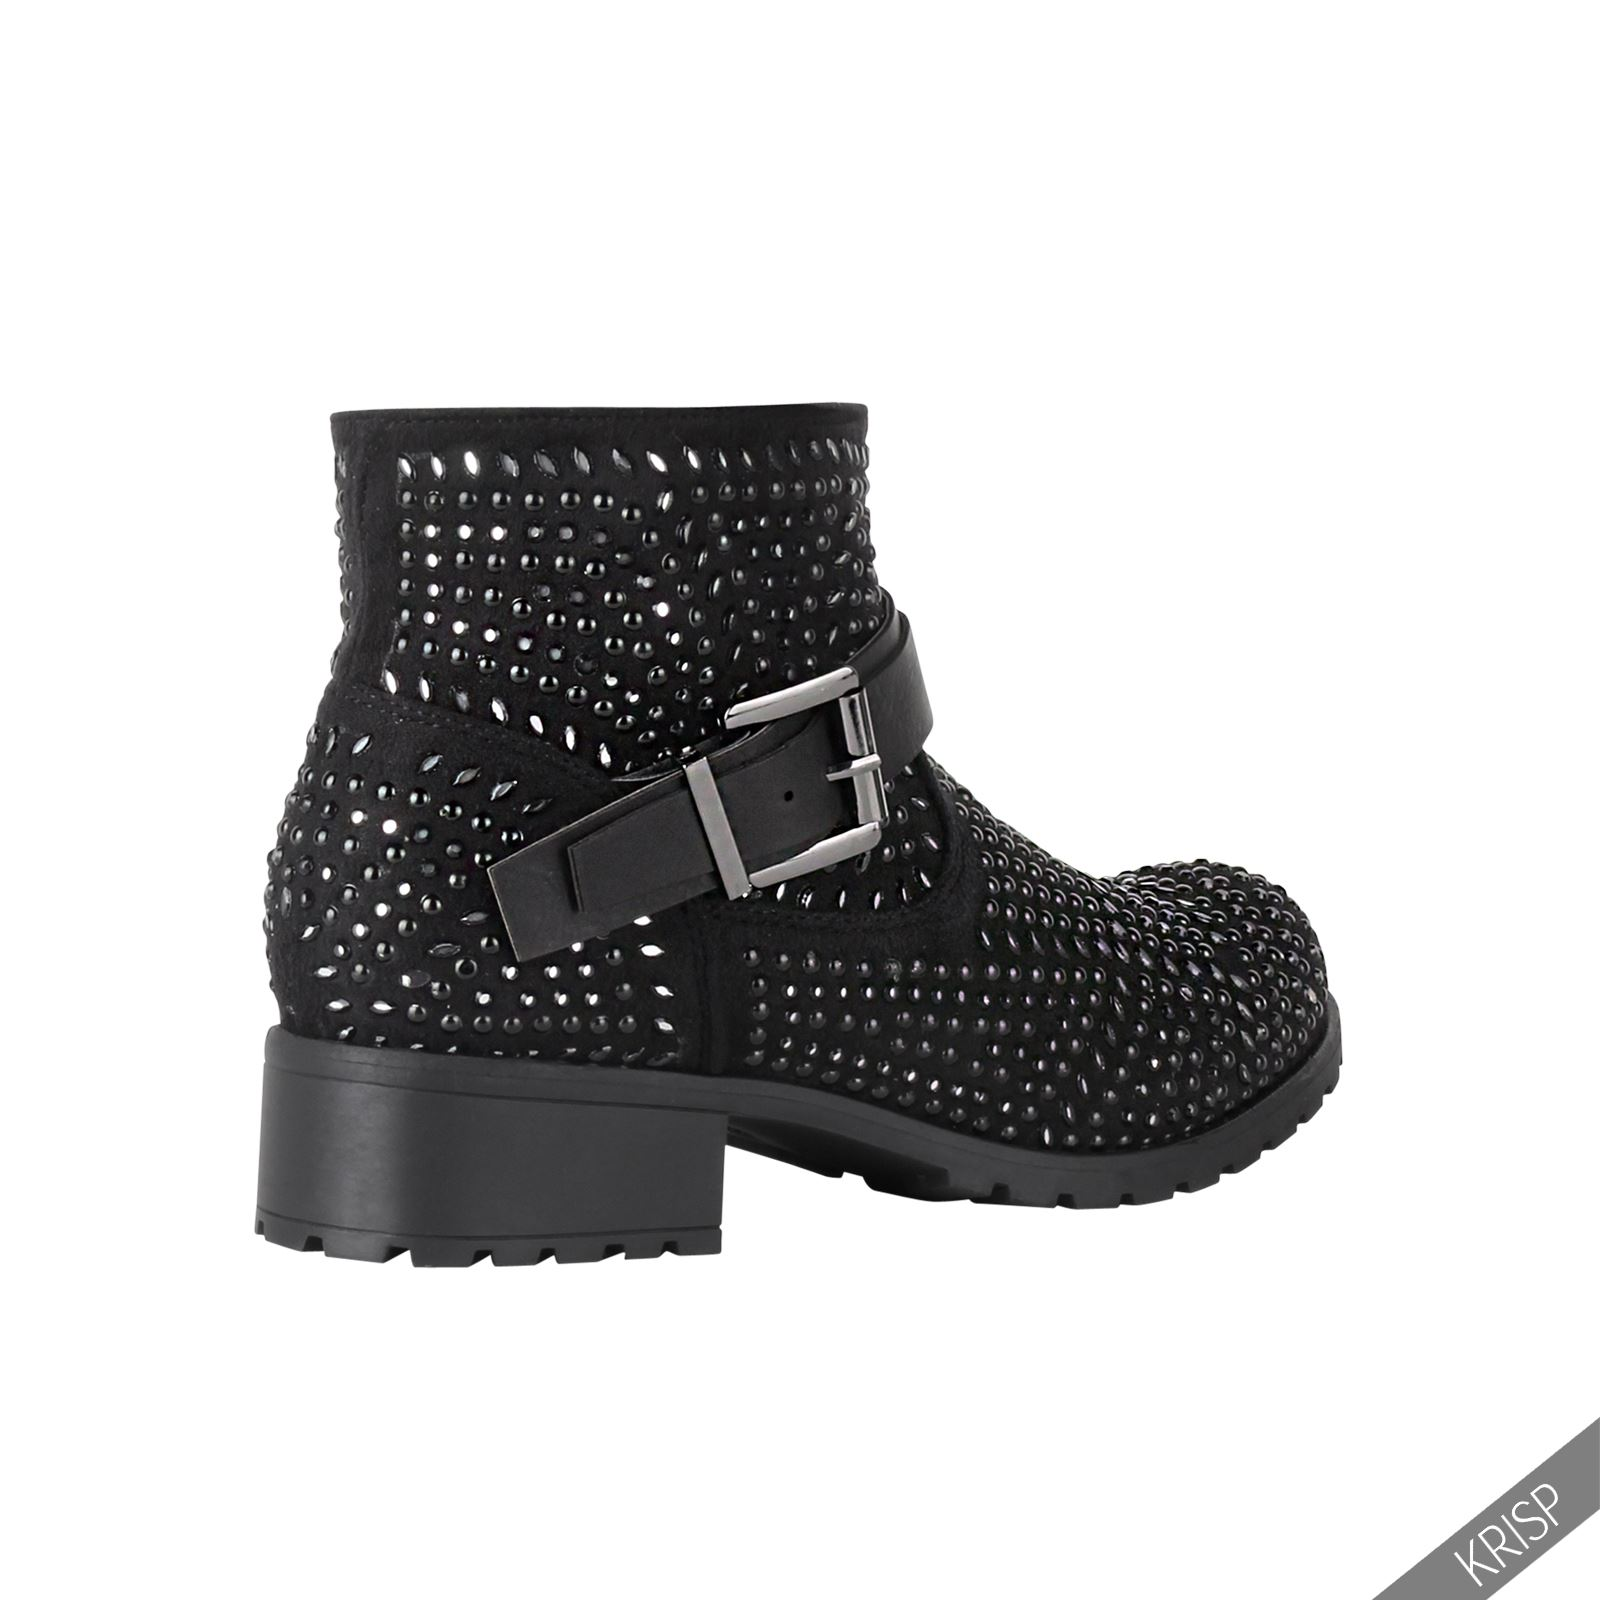 Cool WOMENS ANKLE BOOTS LADIES BIKER BUCKLE CASUAL FASHION LOW HEELS SHOES SIZE NEW   EBay